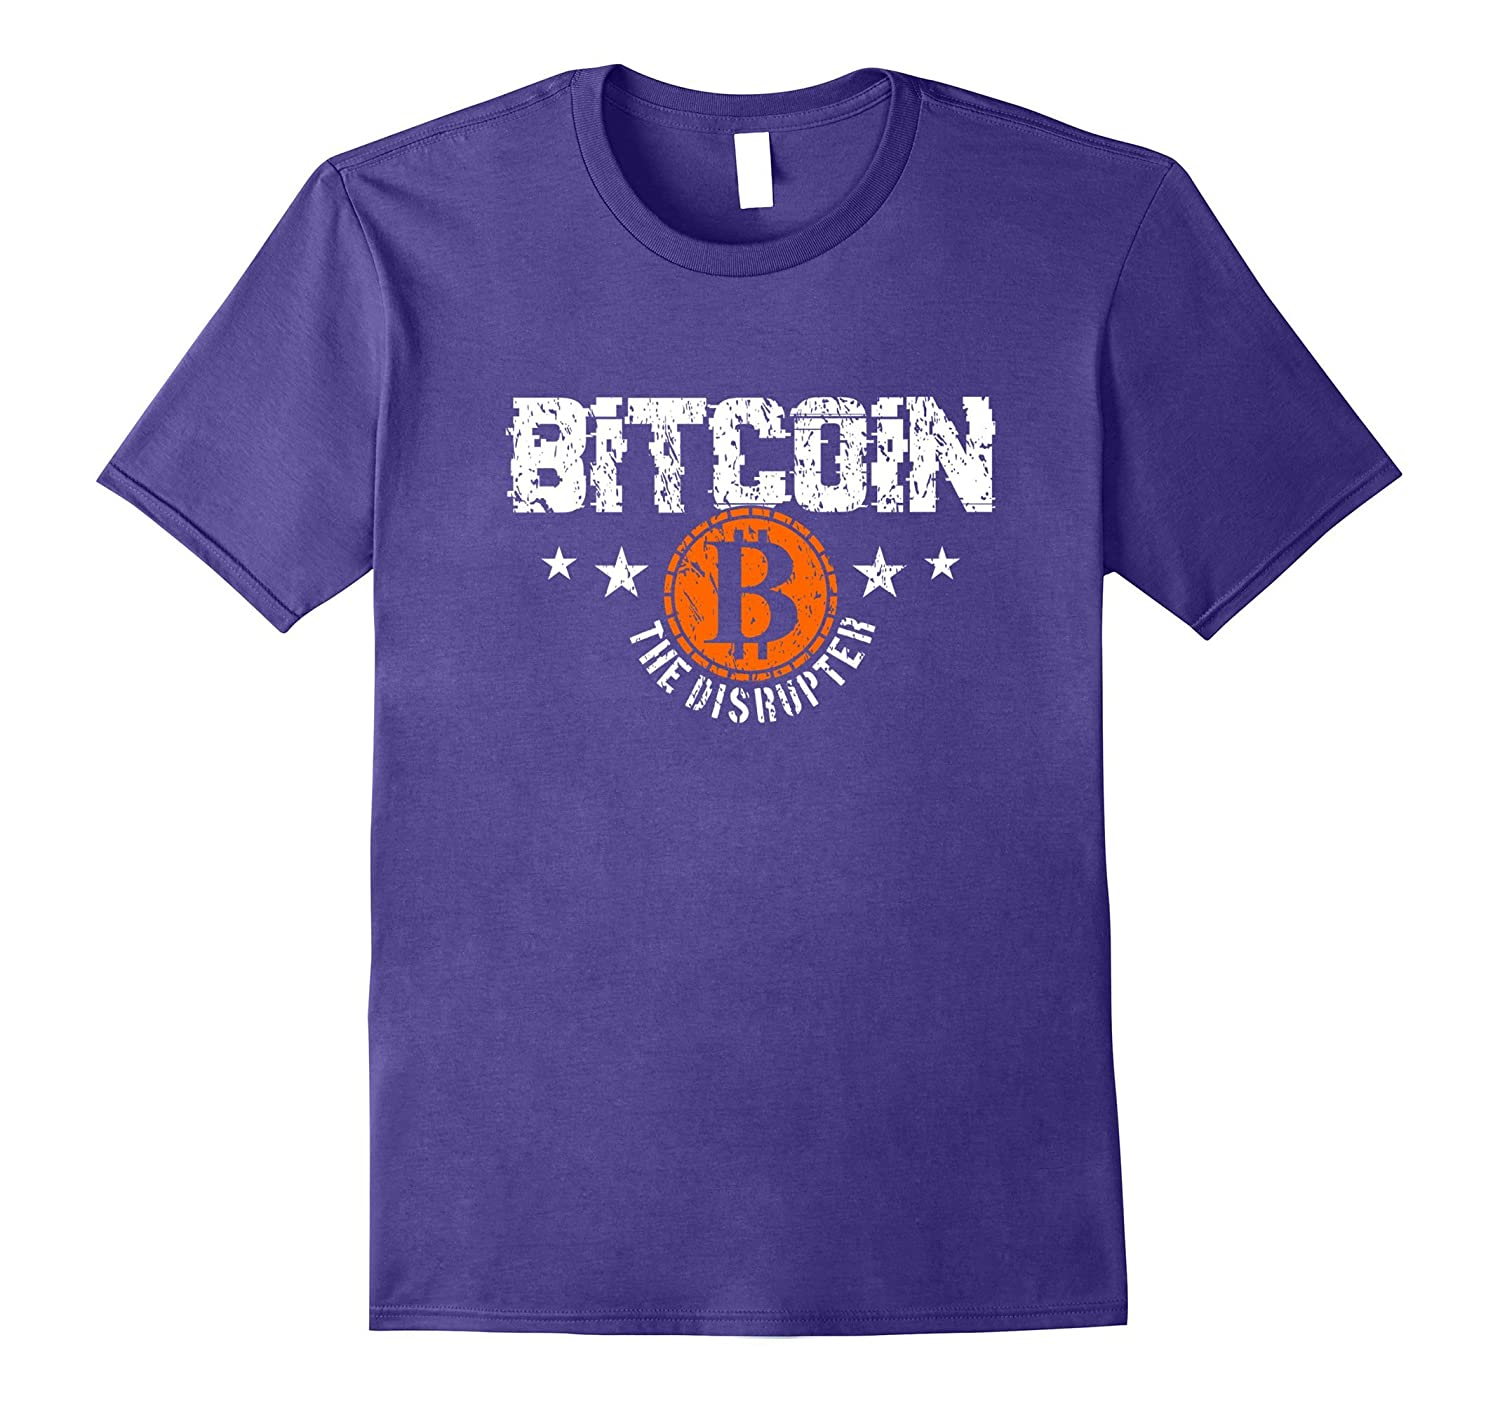 Bitcoin The Disrupter distressed look Tshirt-TJ